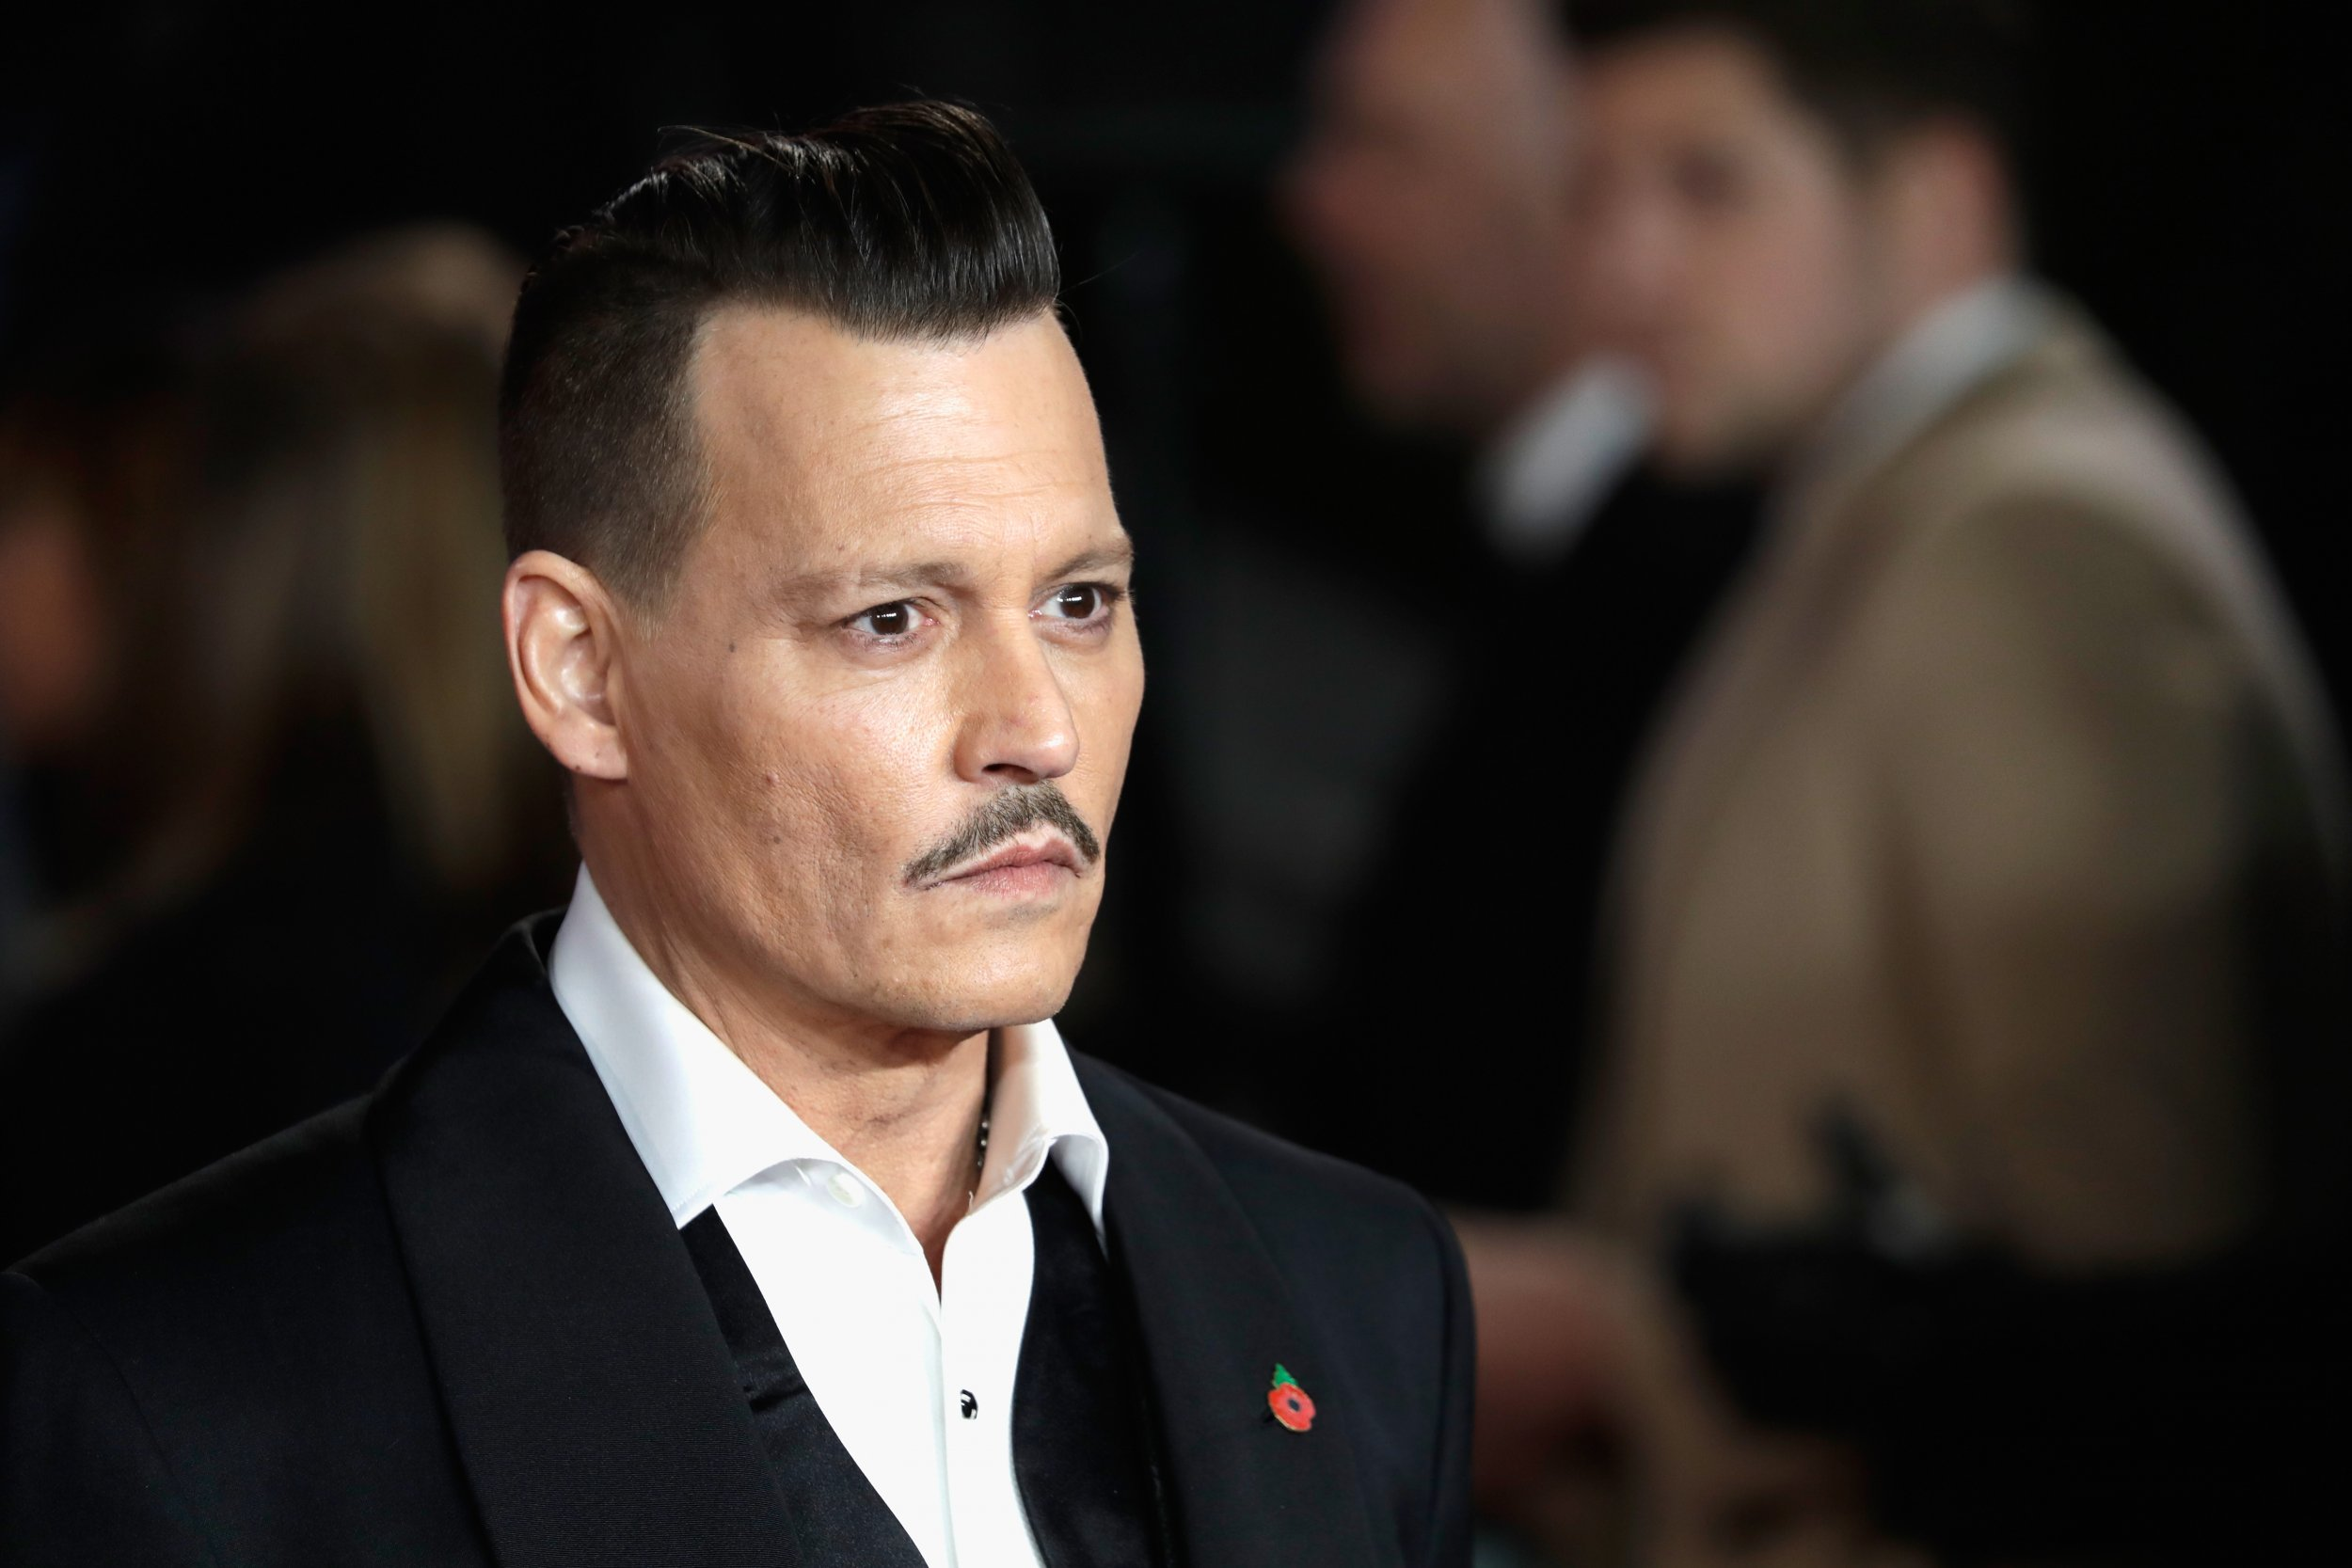 Johnny Depp Says 'Truth' About Amber Heard Abuse Allegations Will 'Come Out'